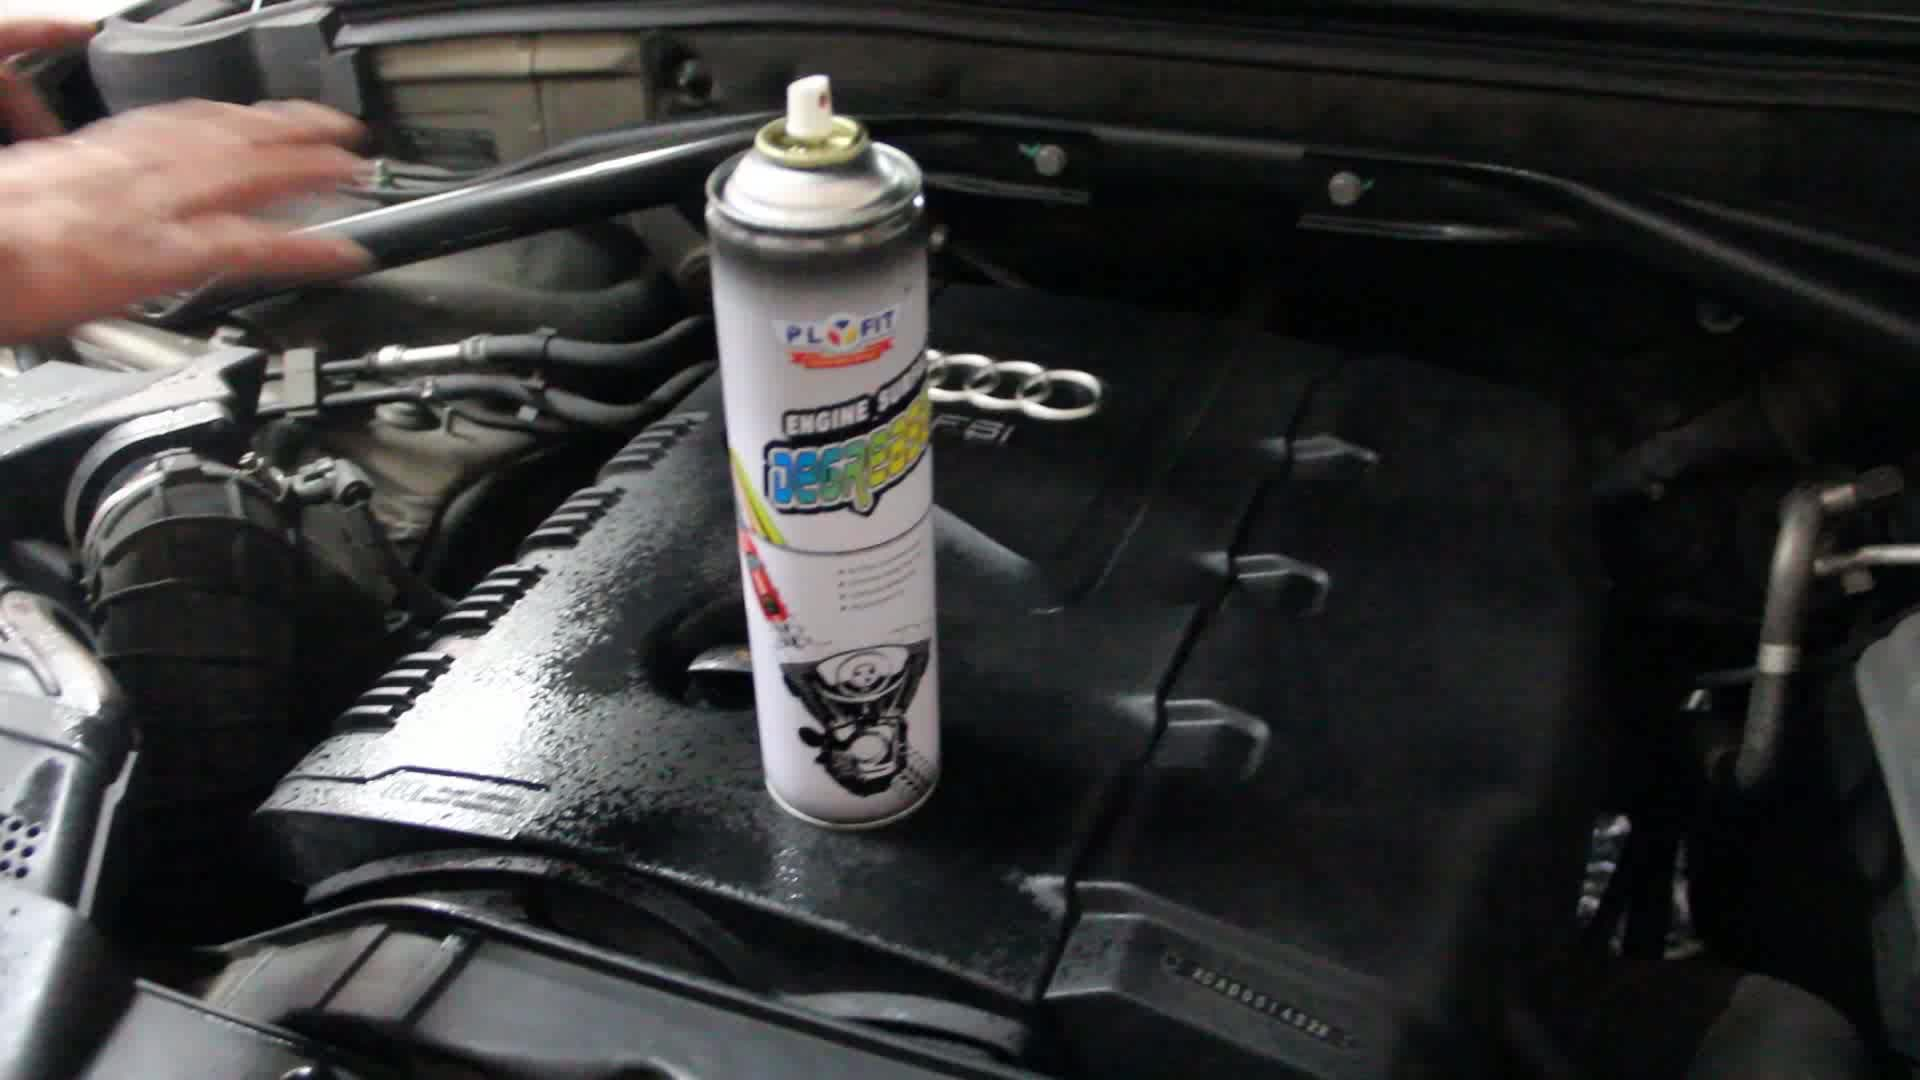 Car Engine Surface Cleaning Shampoo And Degreaser